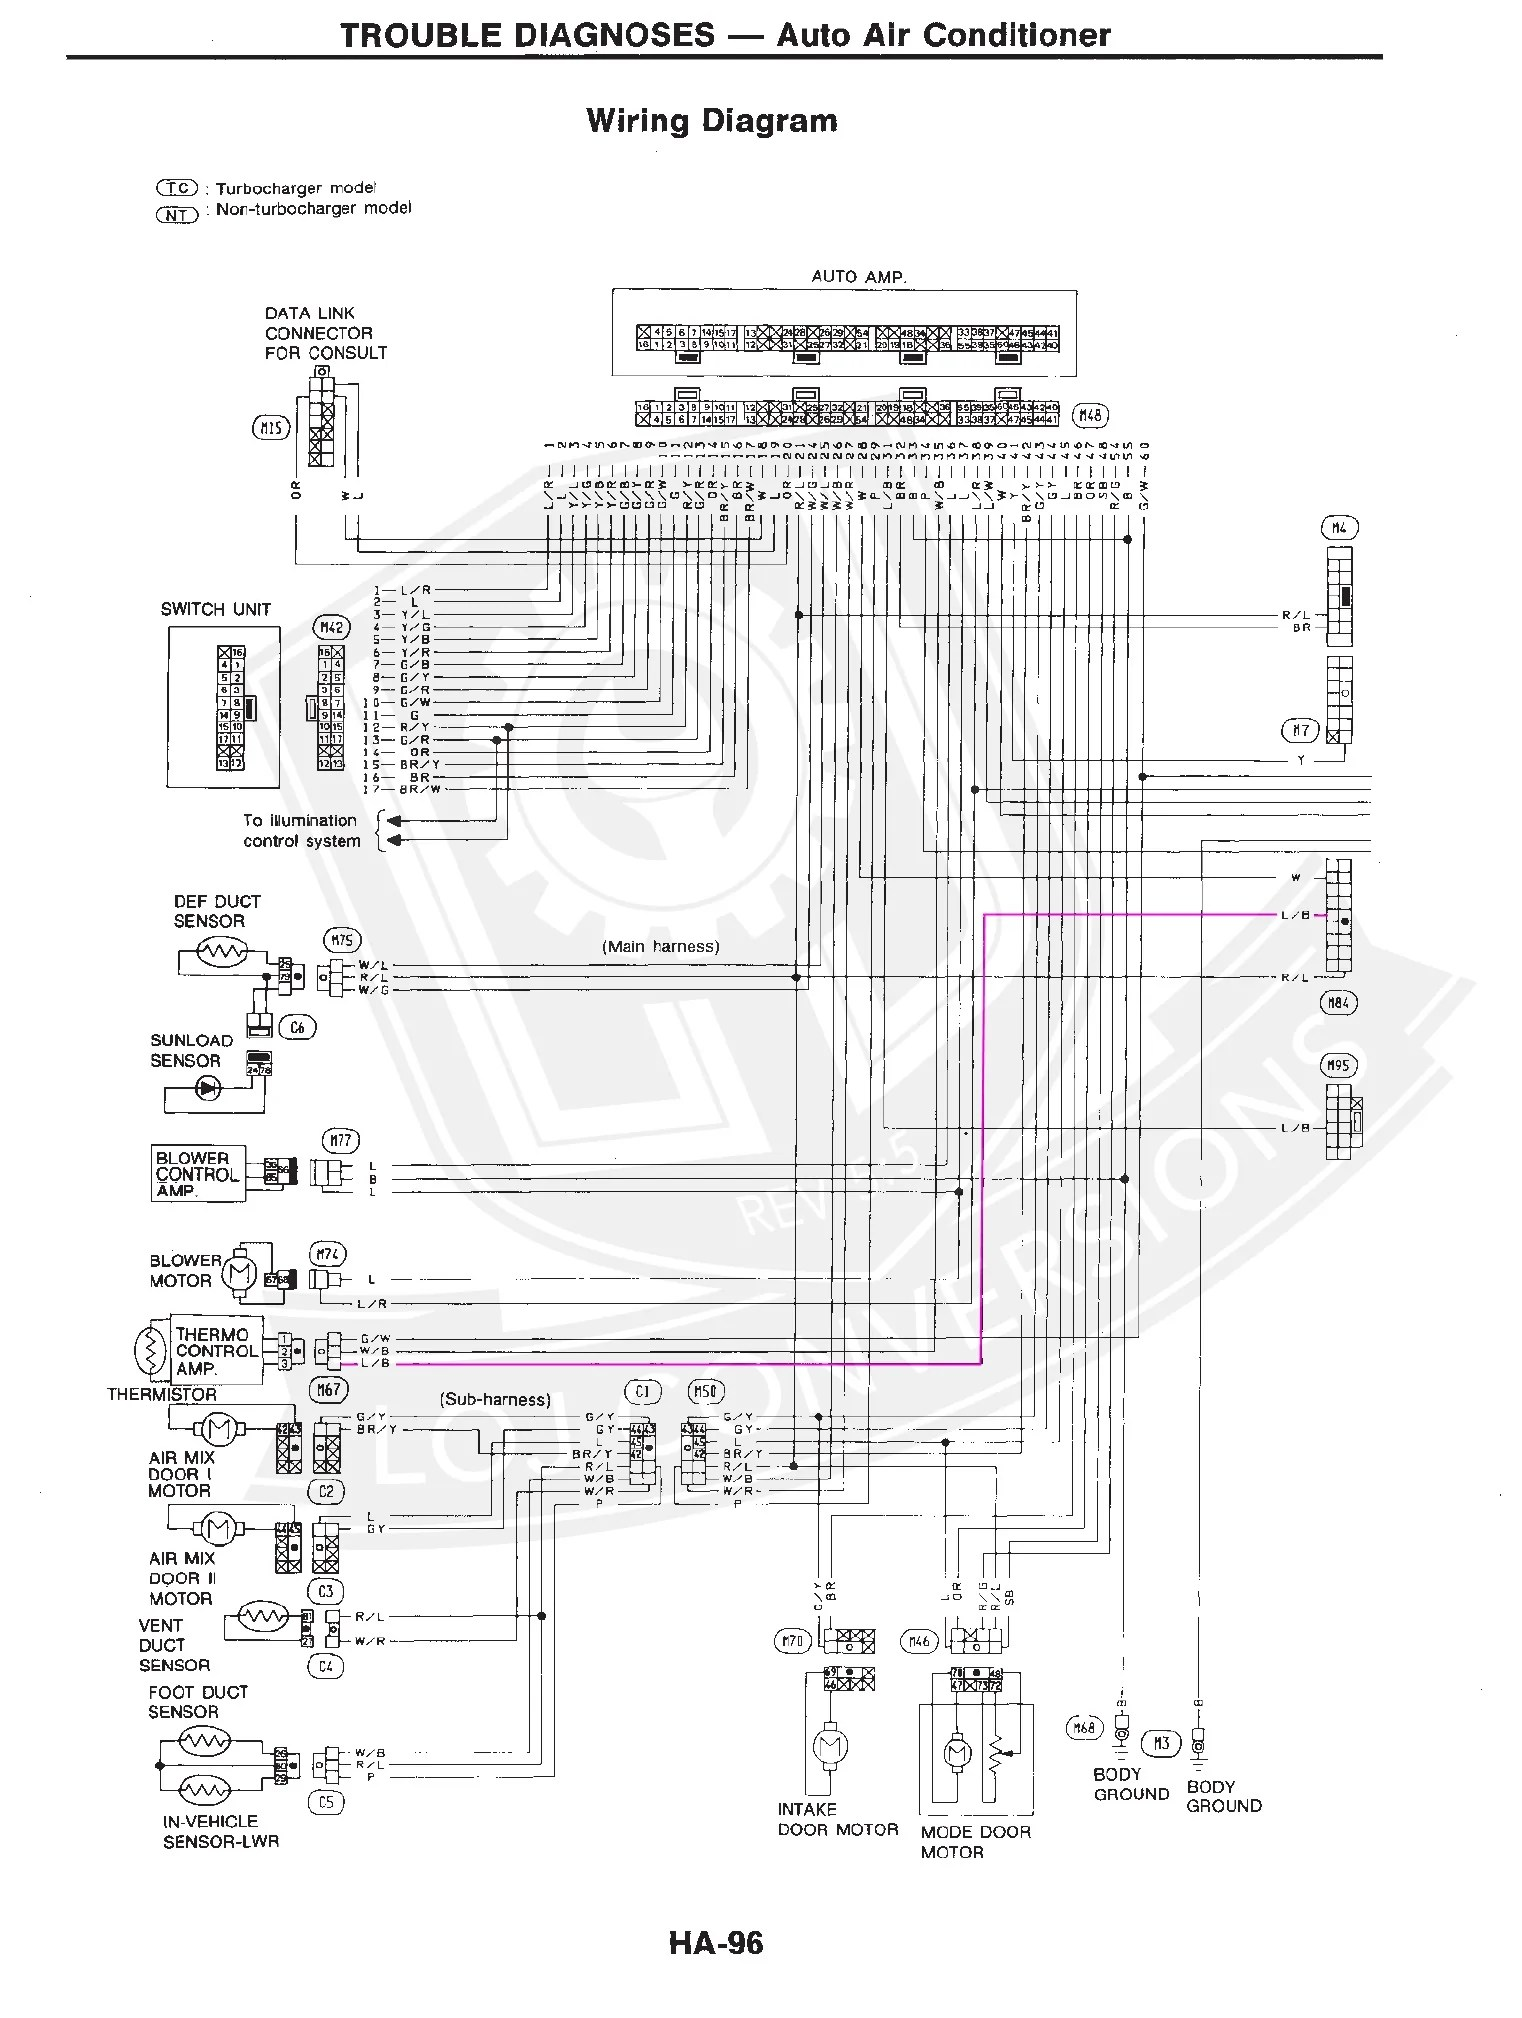 1990 nissan 300zx wiring harness diagram wiring diagram paper [ 1522 x 2018 Pixel ]